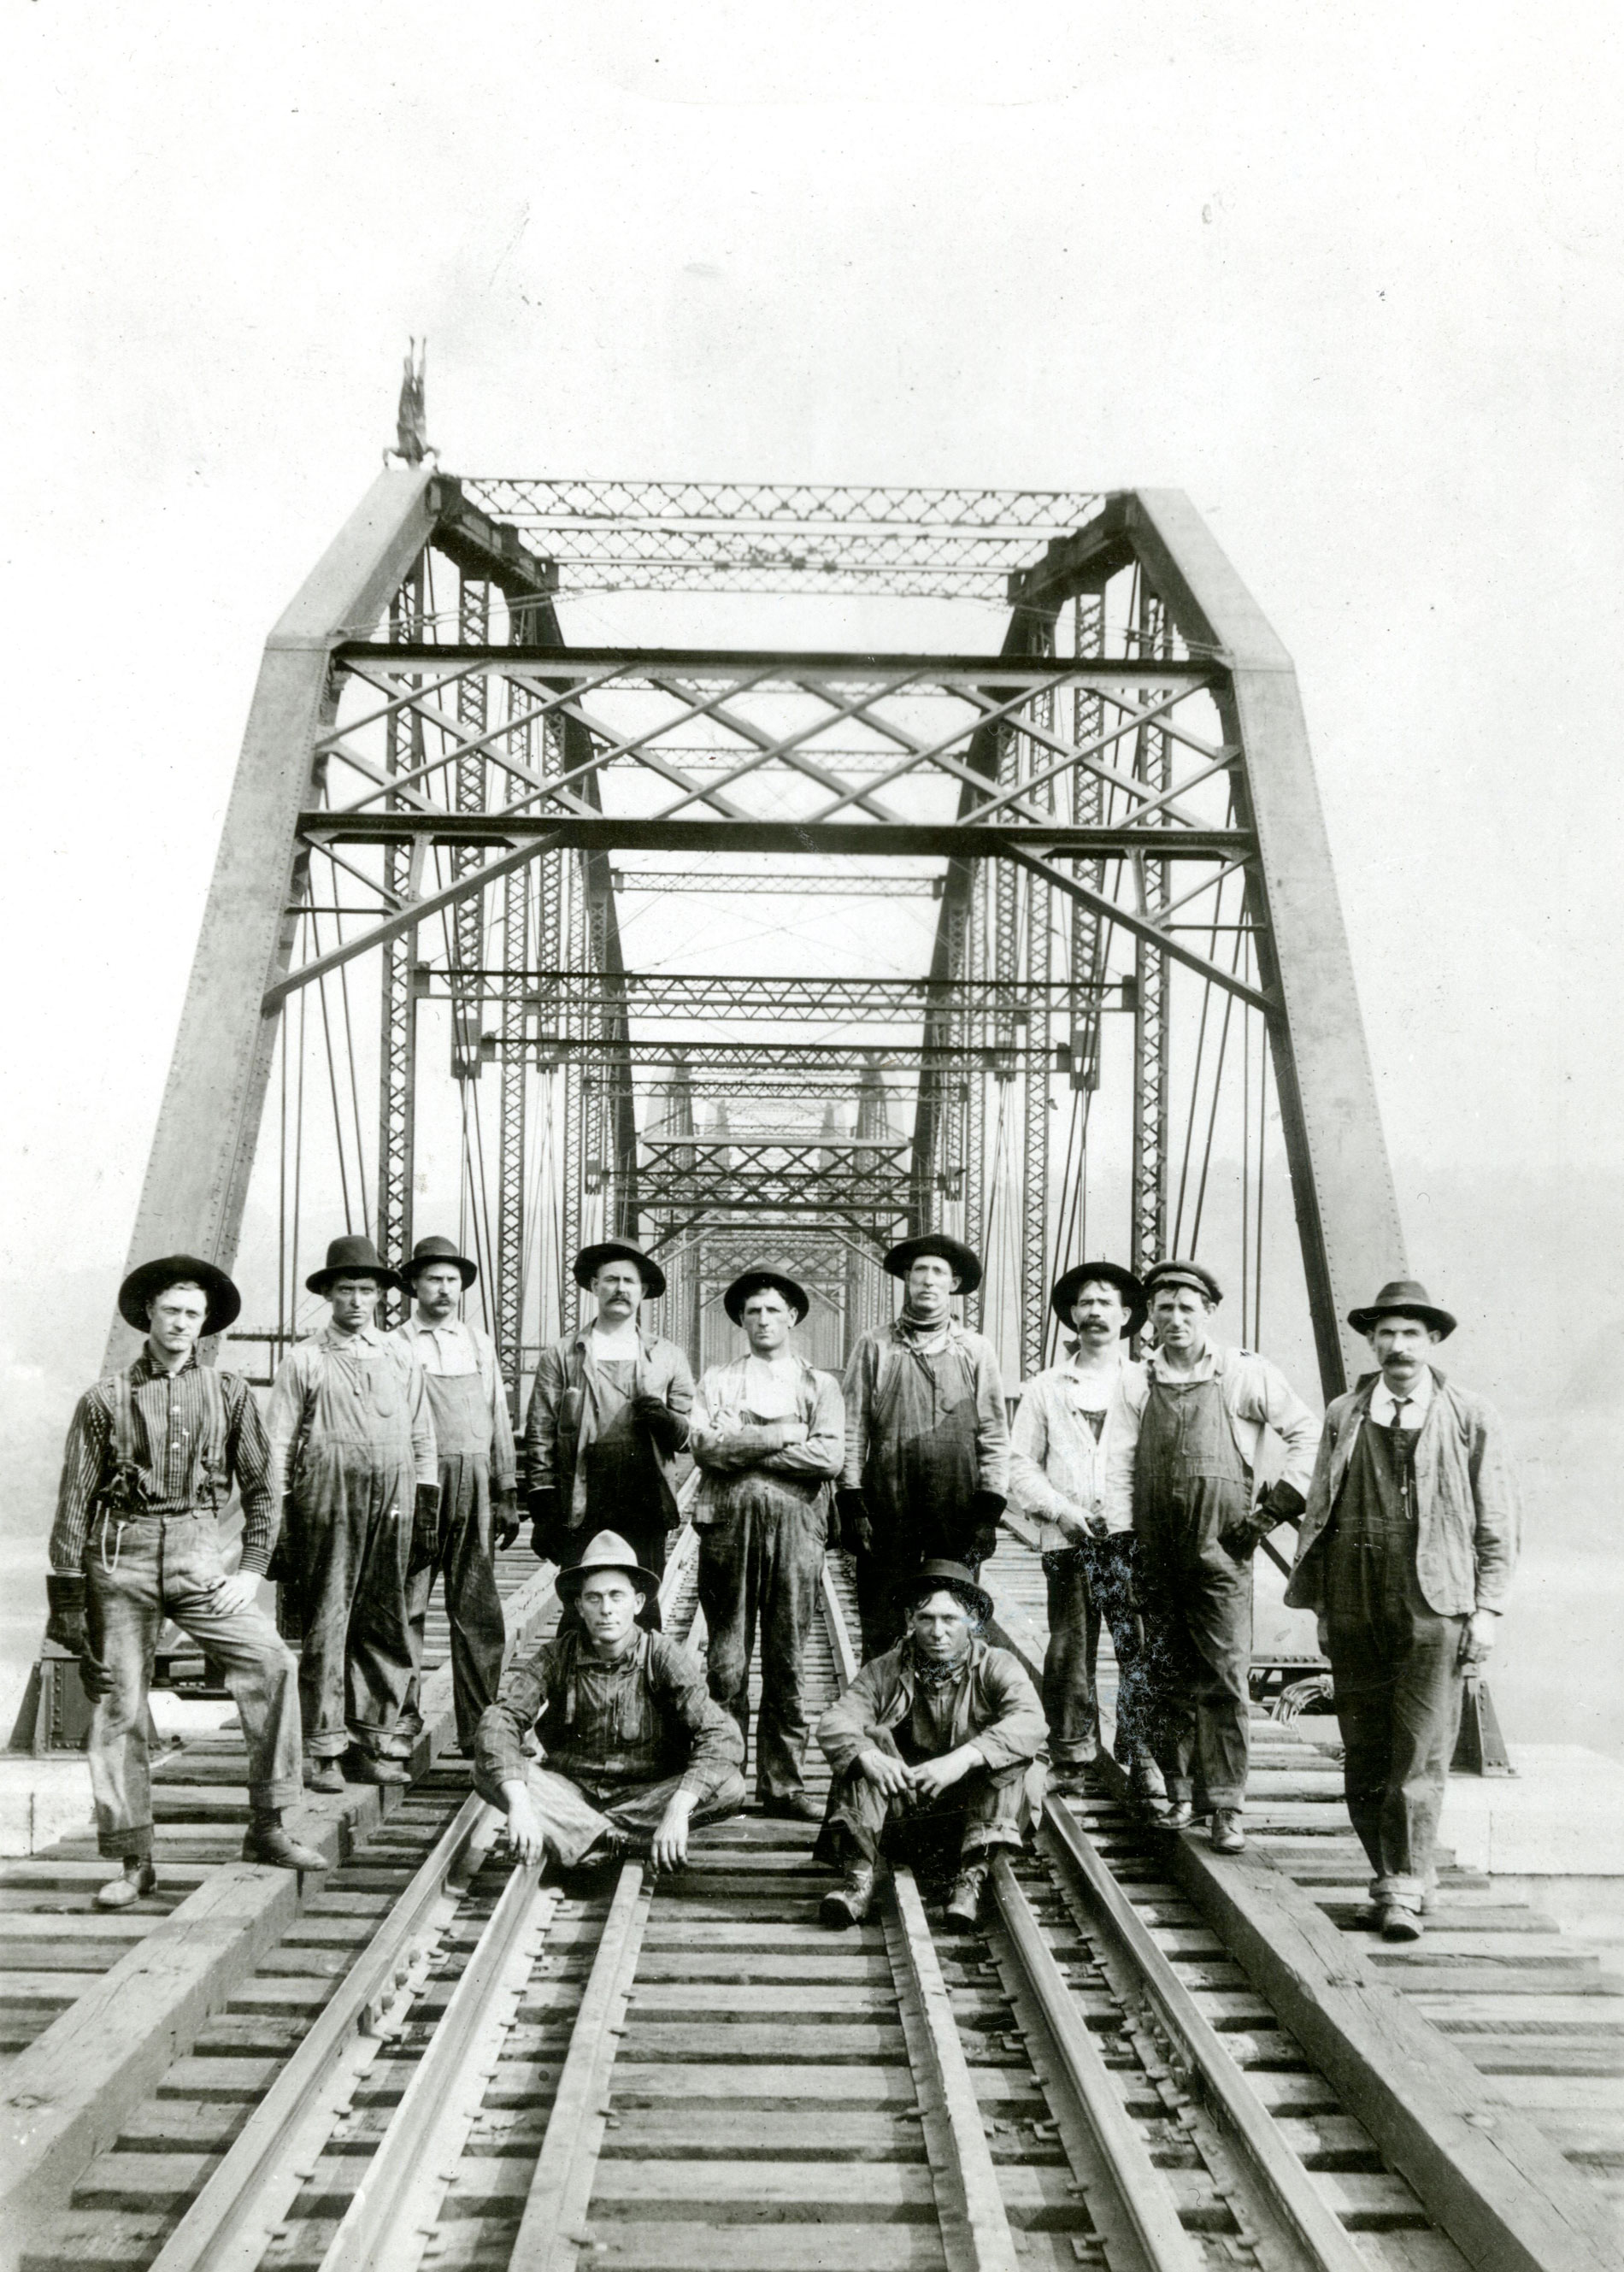 N & W workers standing on the newly competed bridge.